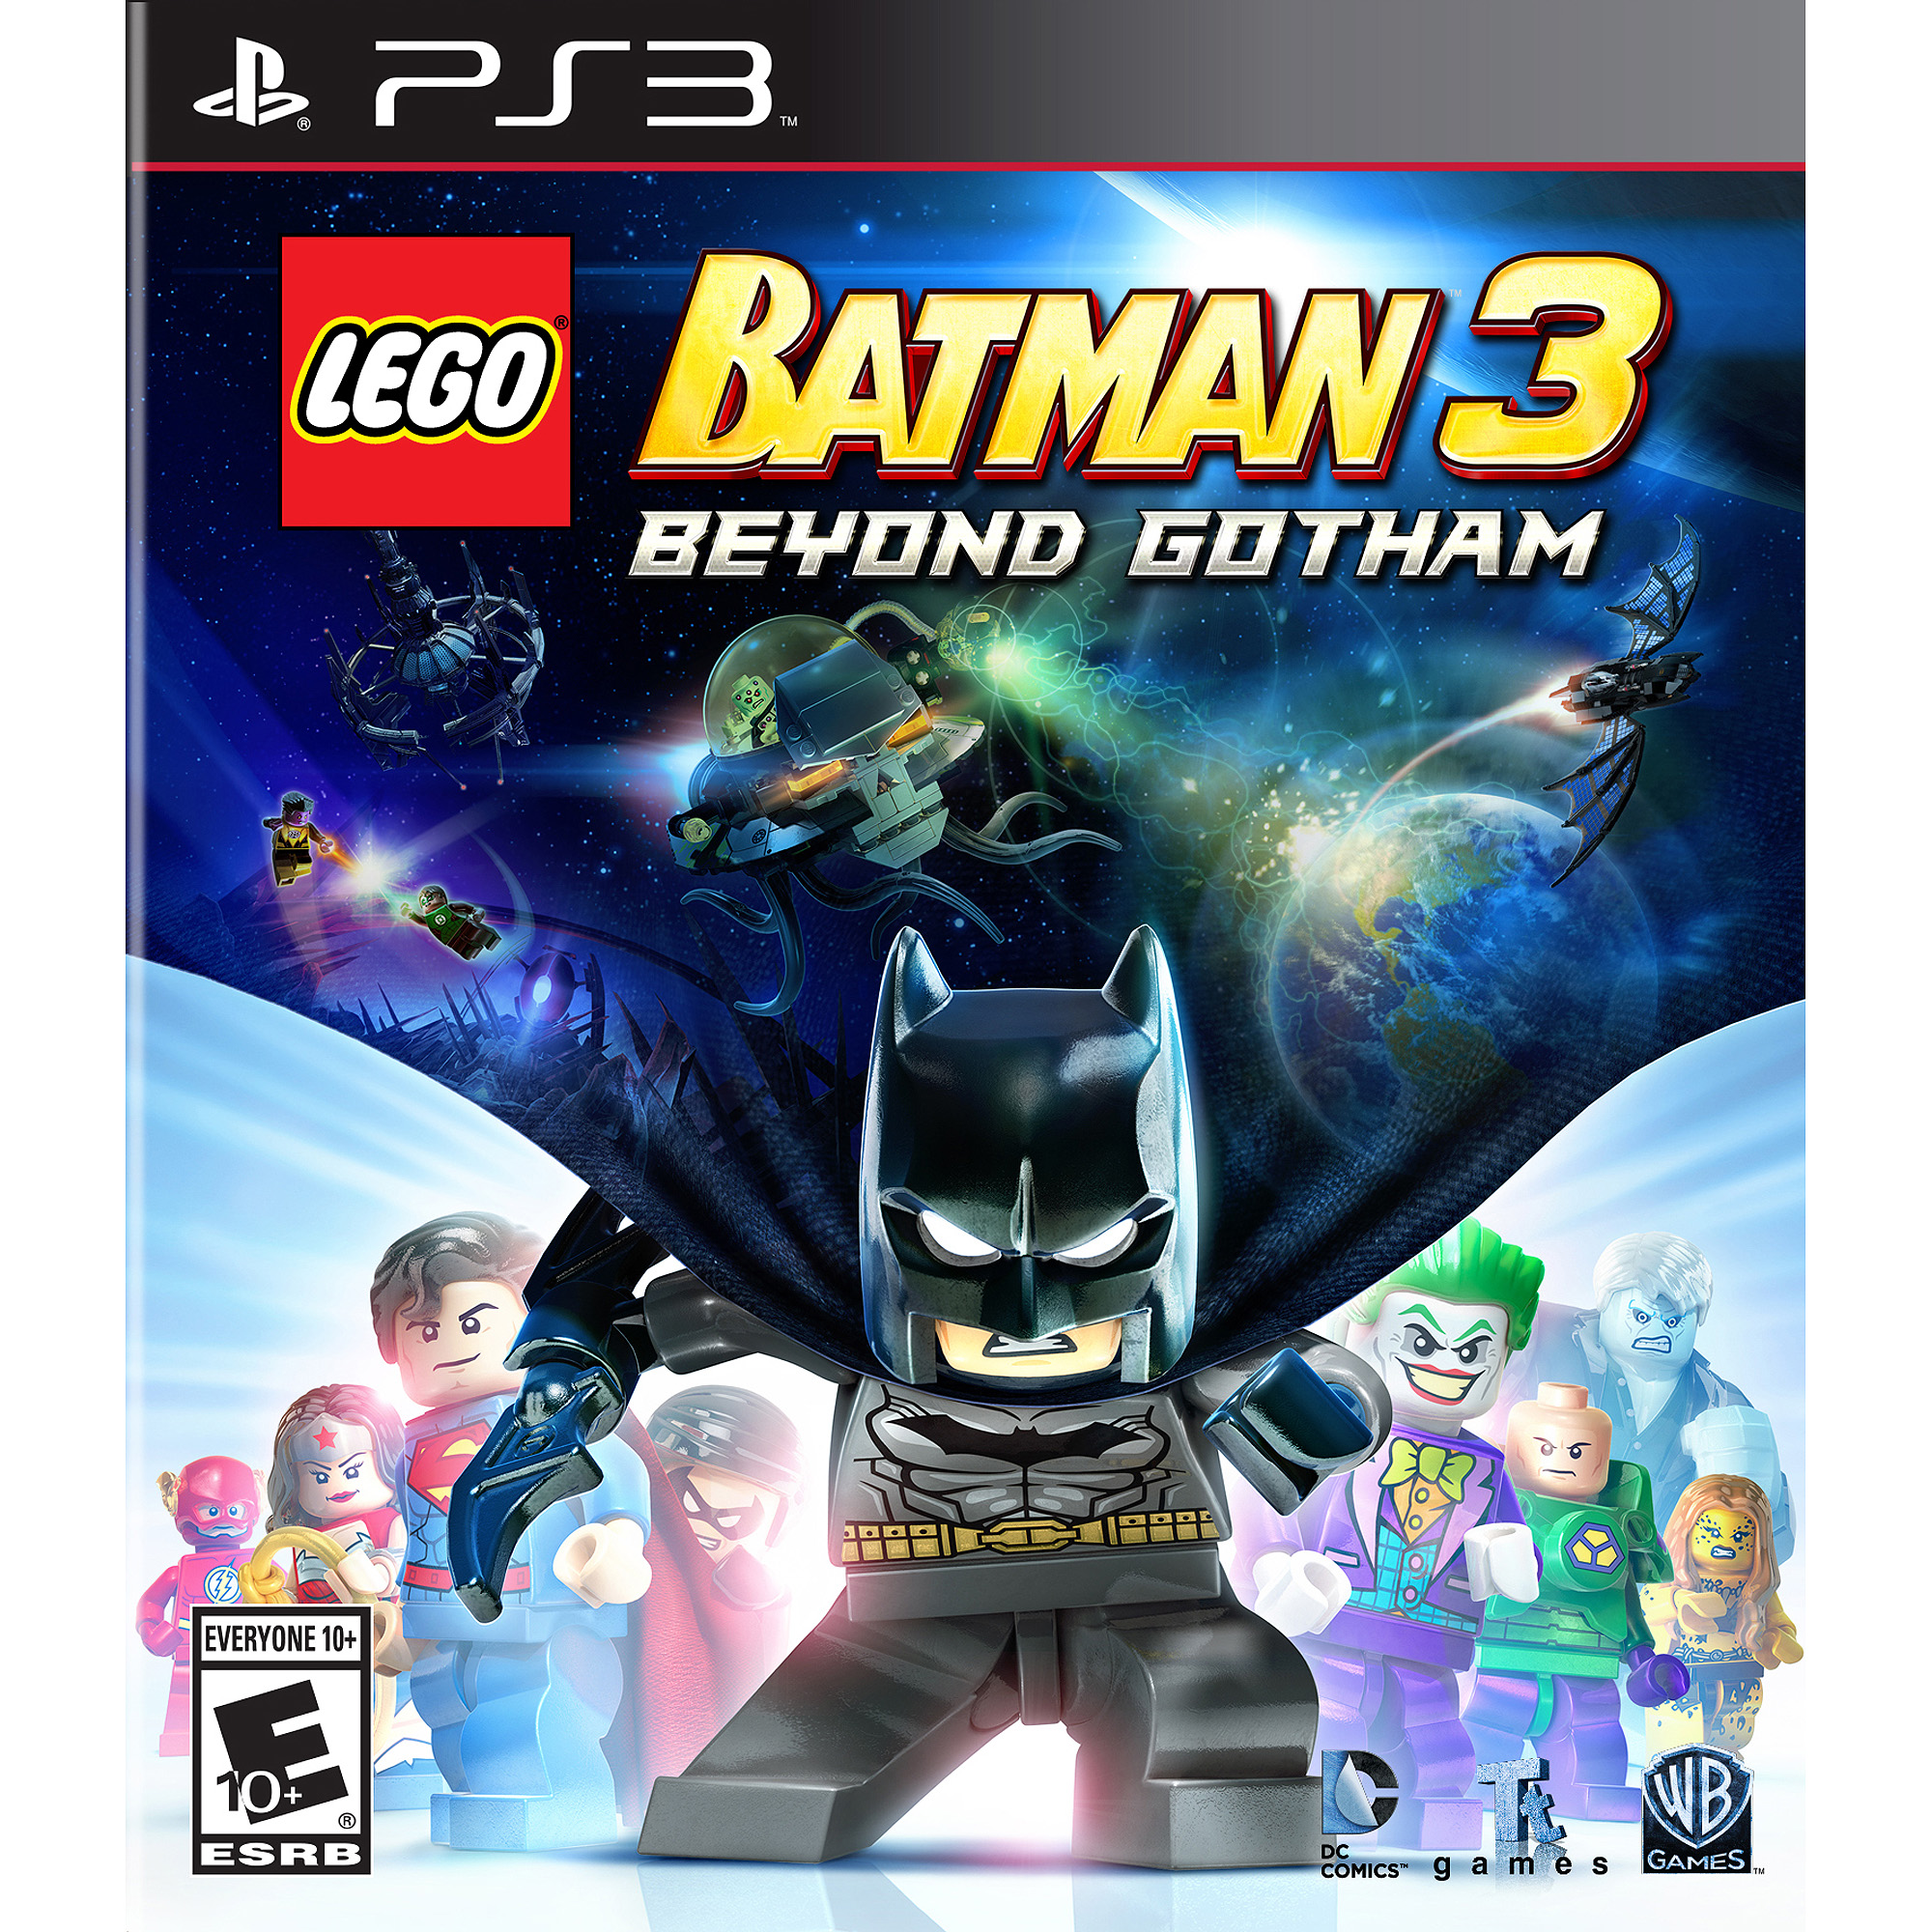 Warner Bros. LEGO Batman 3: Beyond Gotham, WHV Games, PlayStation 3, 883929427437